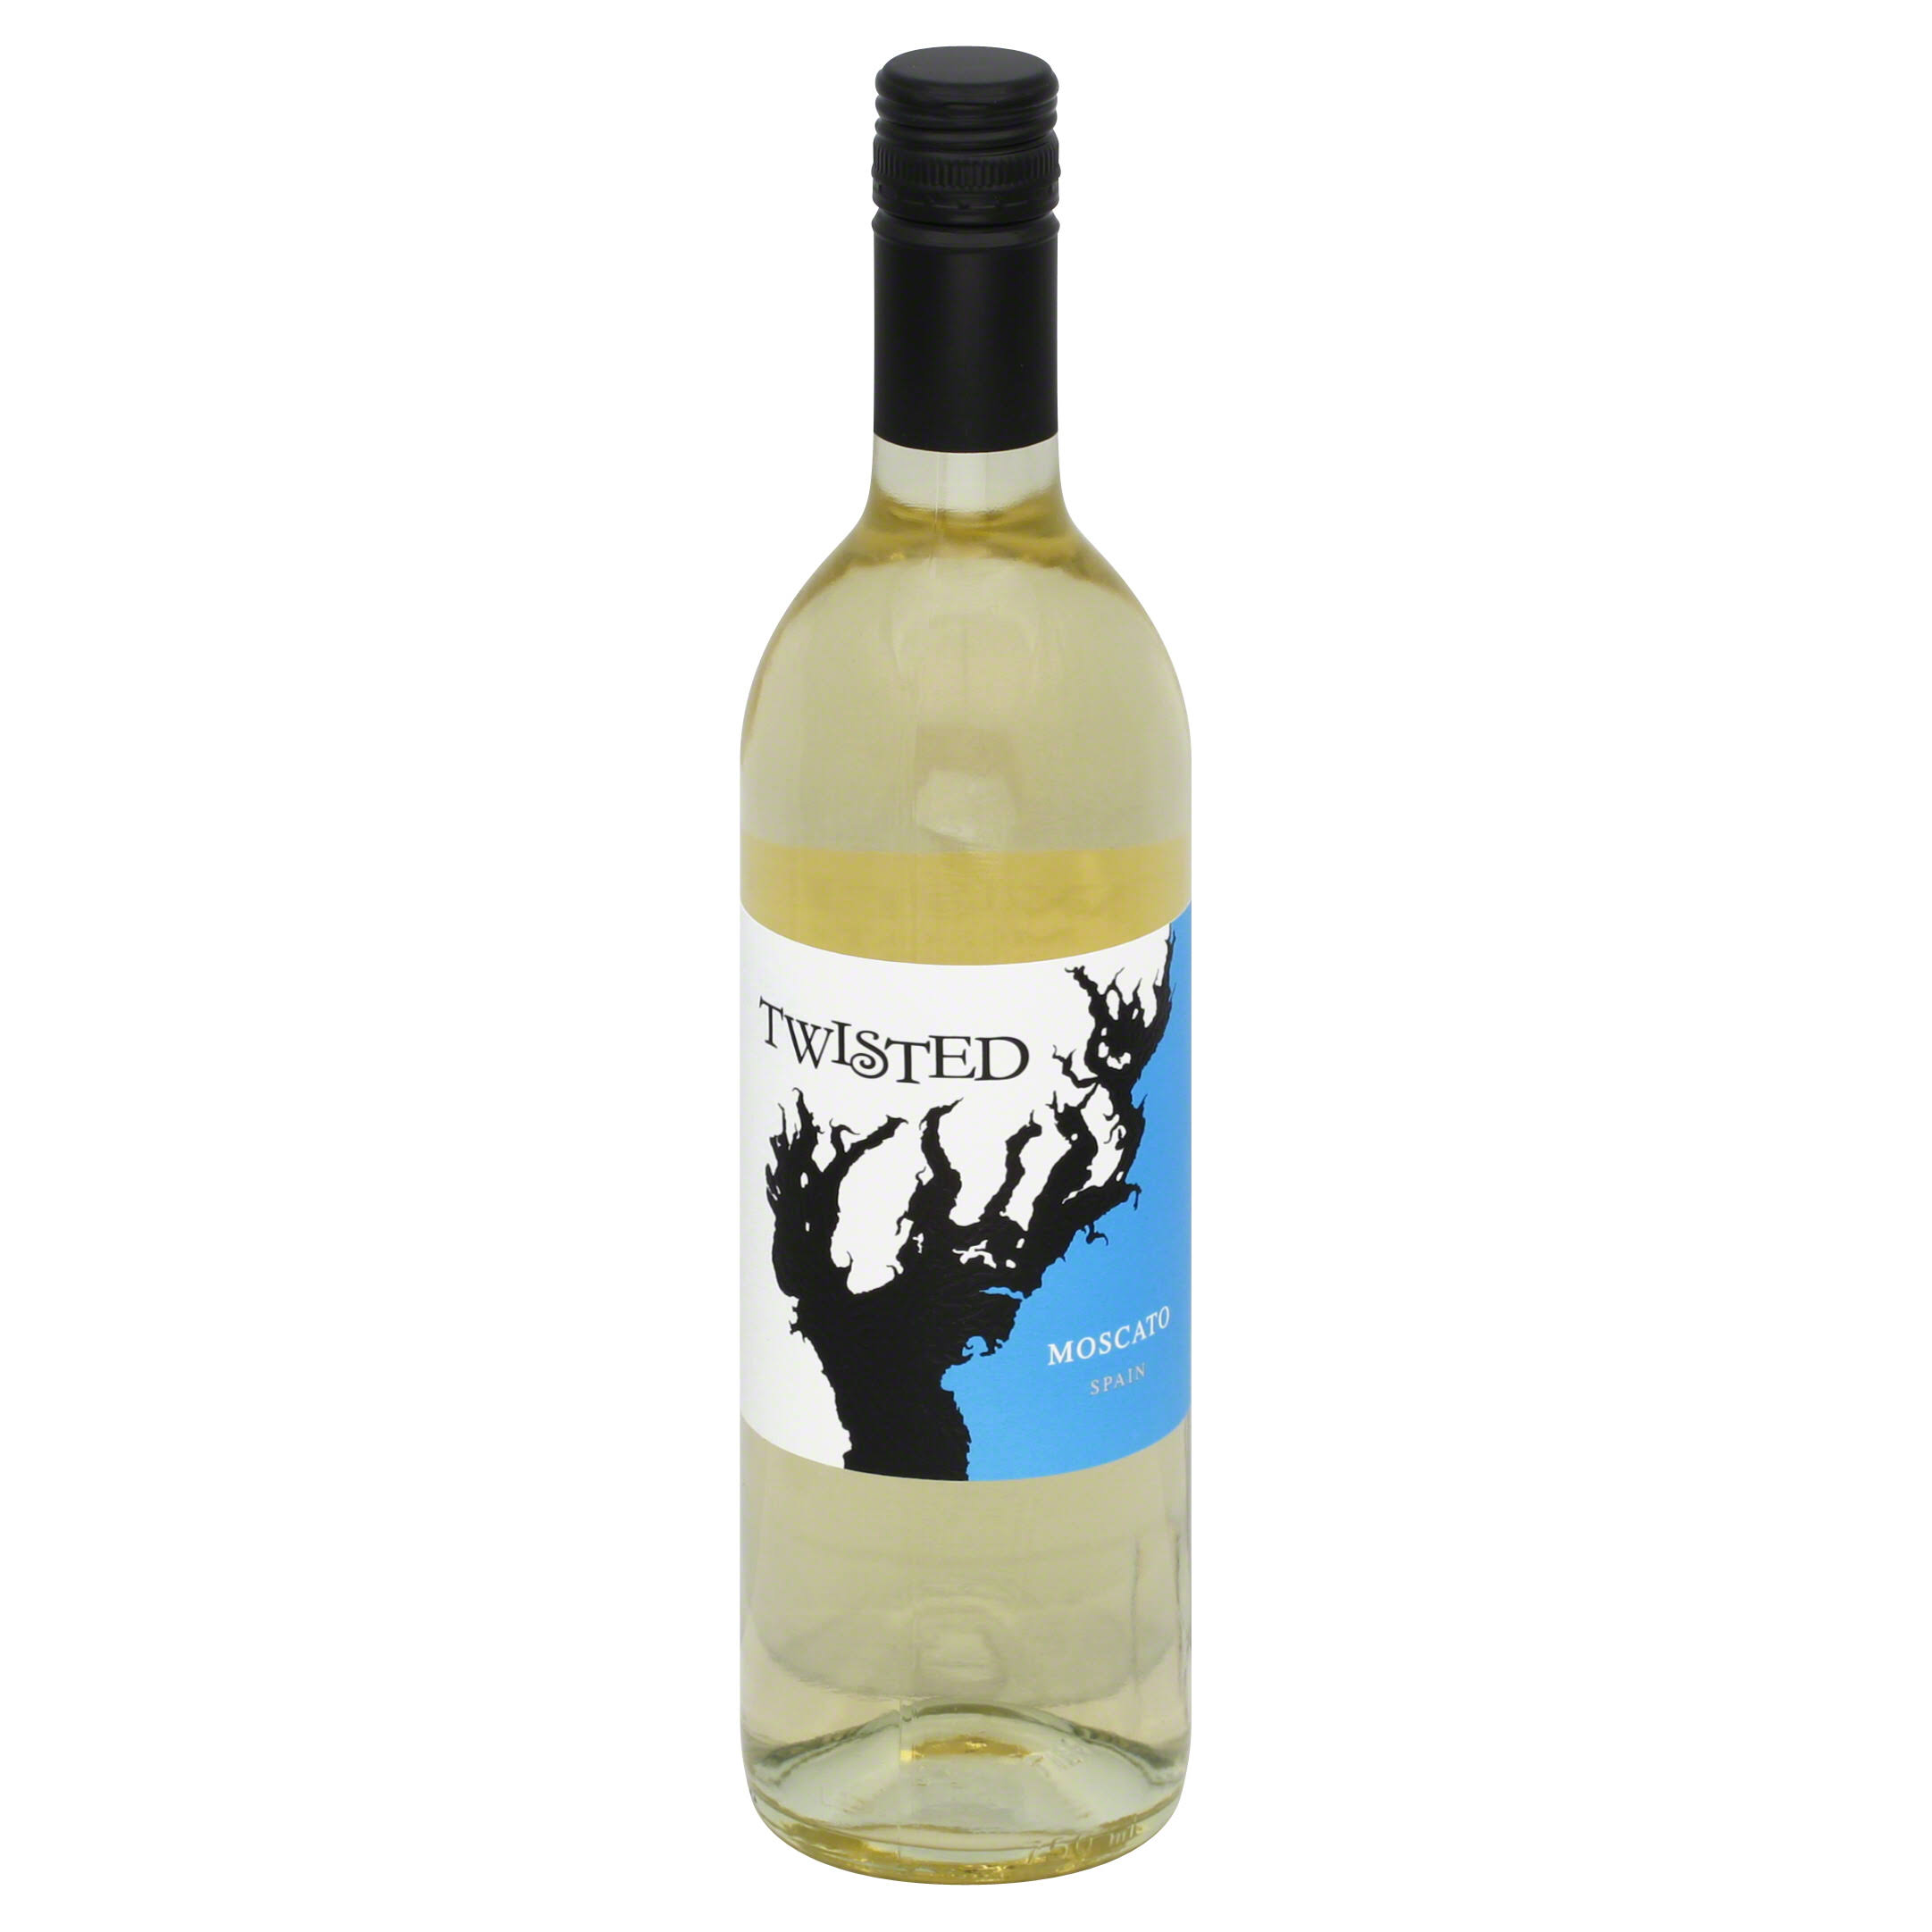 Twisted Moscato, Spain - 750 ml